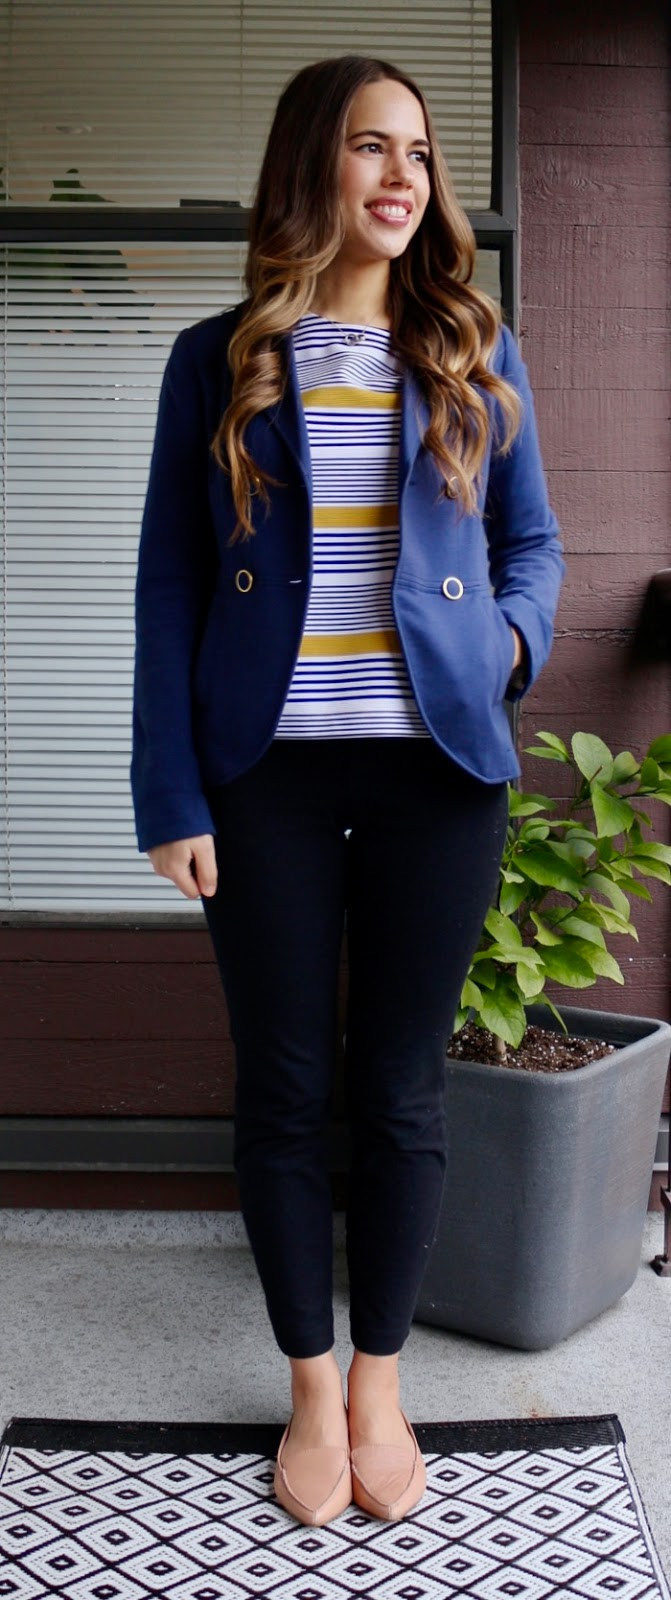 Jules in Flats - Blazer with Stripes for Work